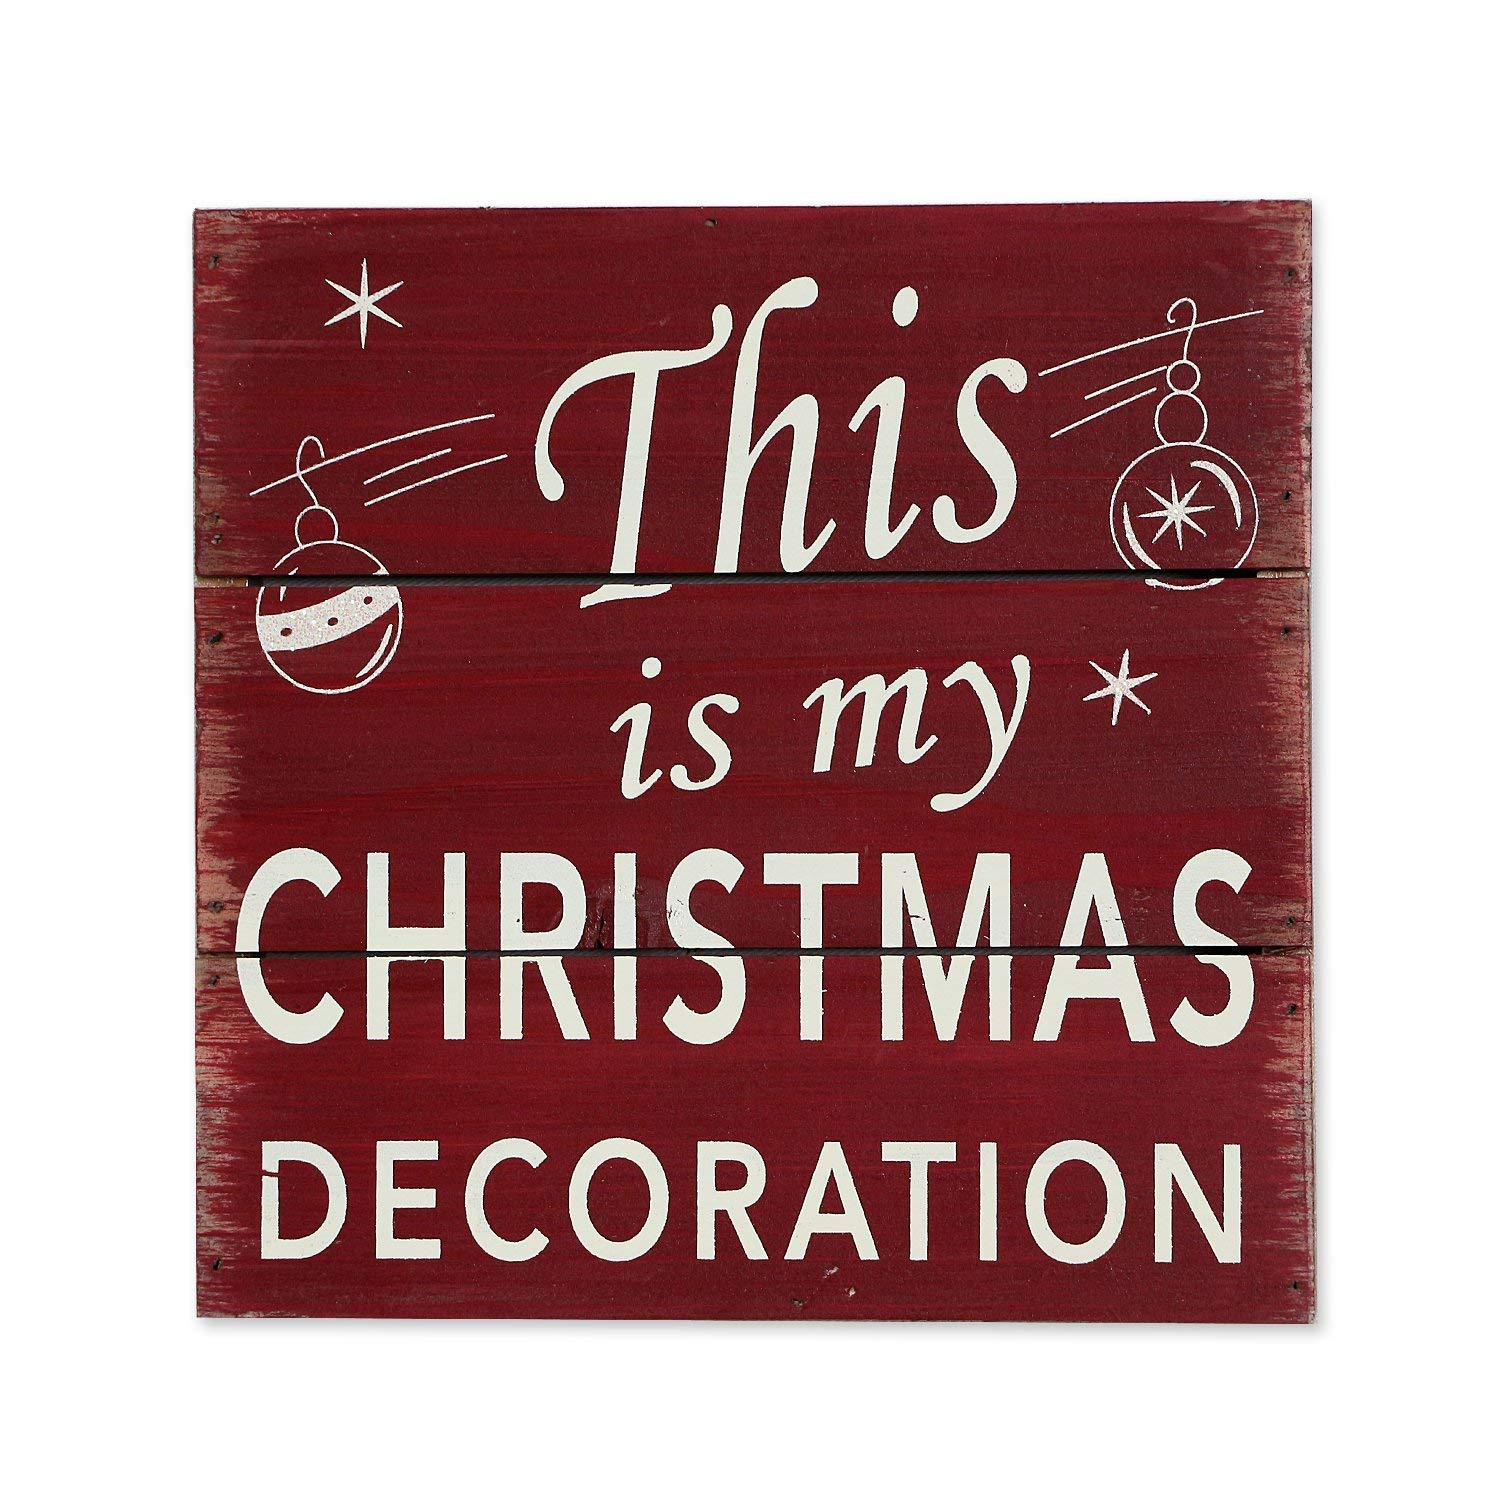 4 Home Accent This is My Christmas Decoration Wood Holiday Wall Art Decor Sign Plaque Age Print Wooden Plaque Handmade Wall Art Red